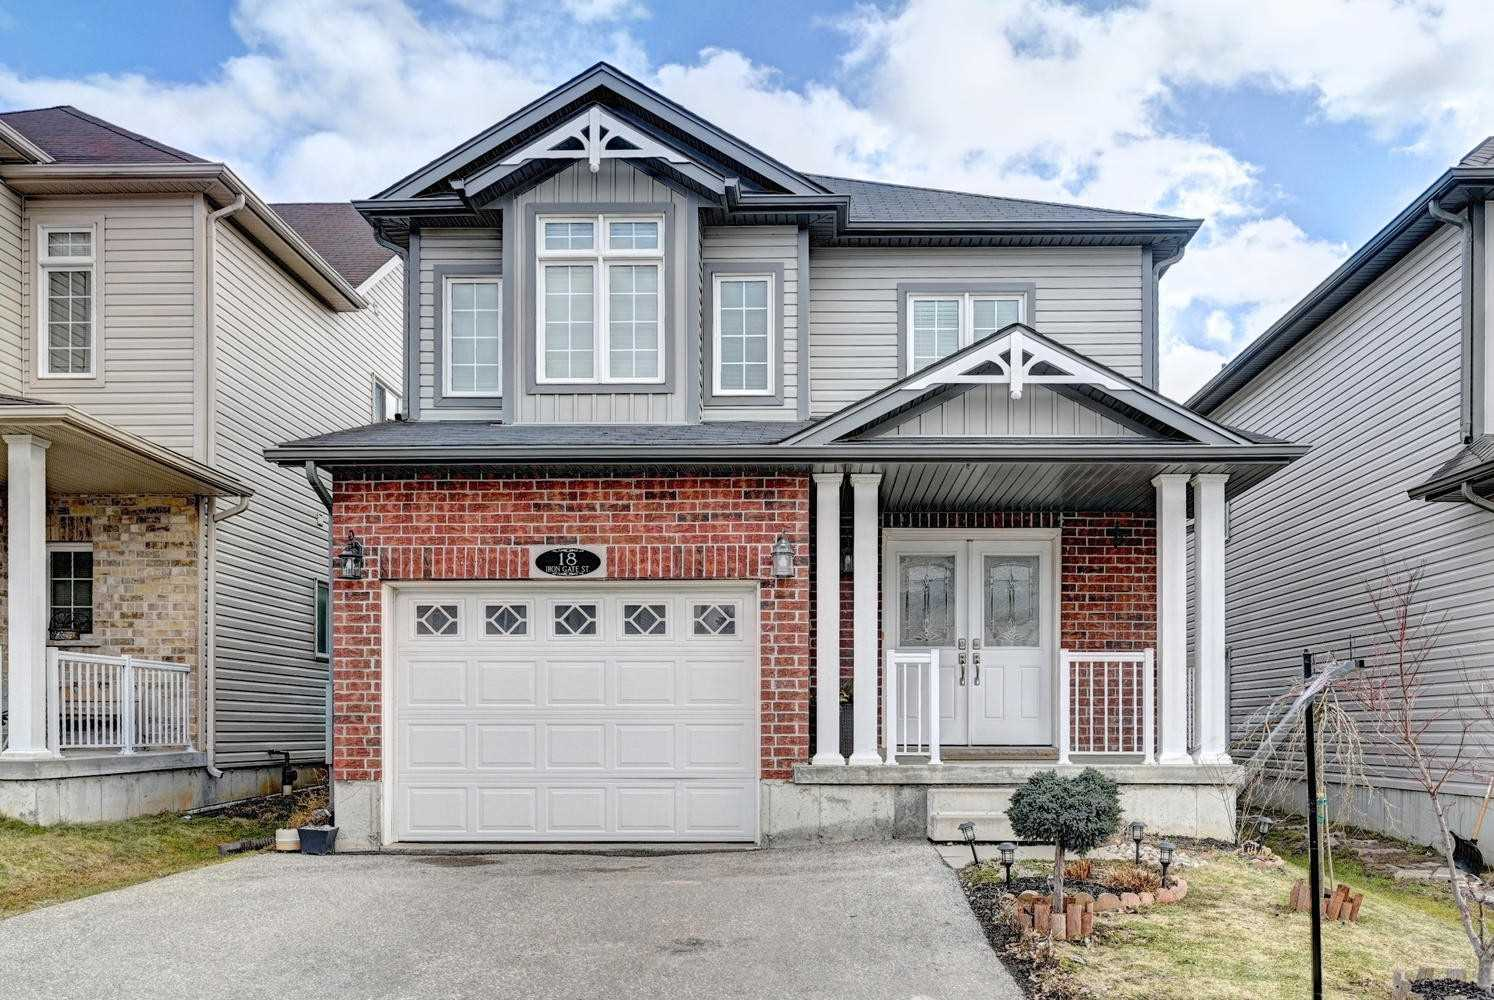 pictures of house for sale MLS: X4721546 located at 18 Iron Gate St, Kitchener N2N3R8